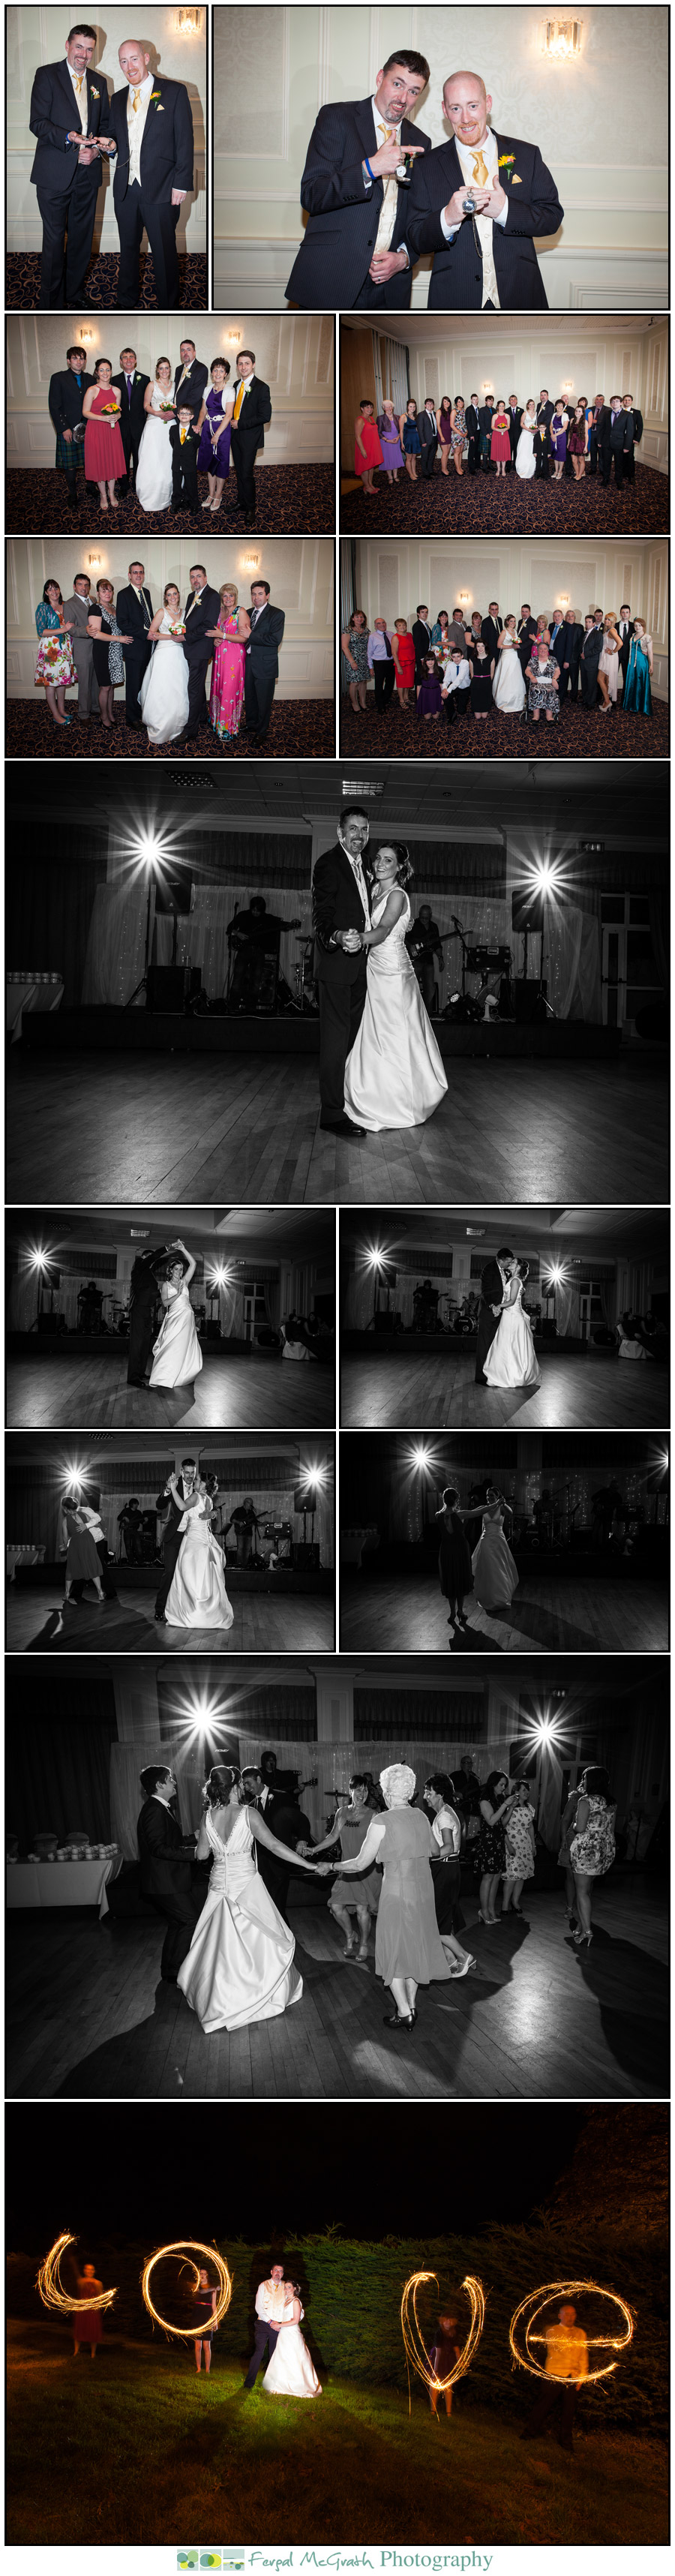 sarah and david moon wedding photos 11